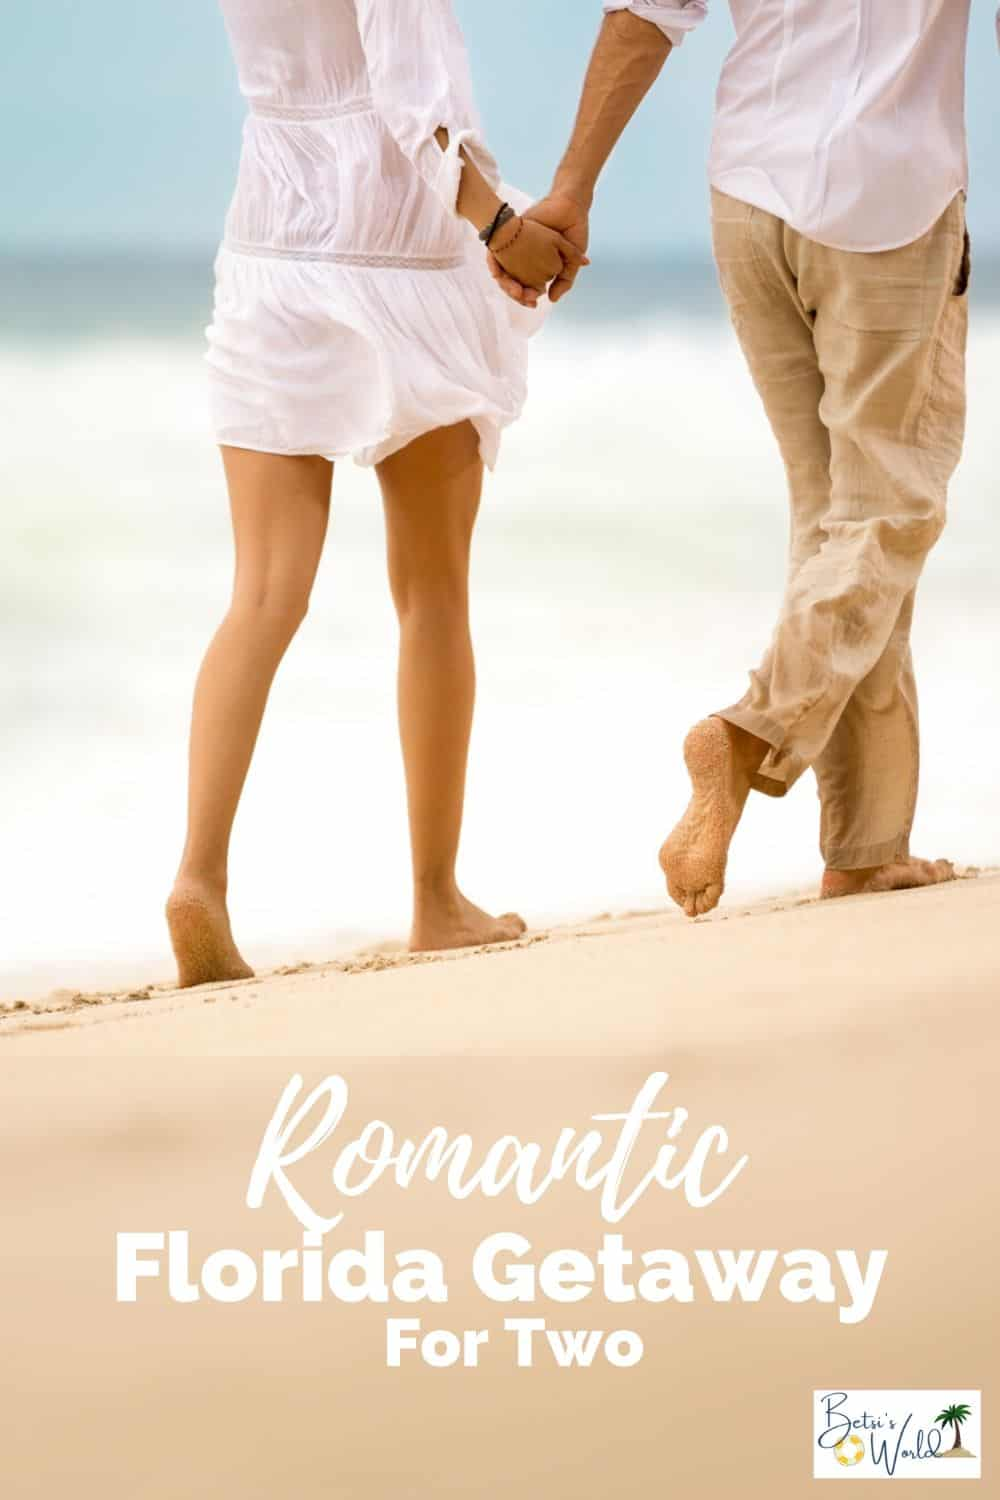 When the stress of life closes in it's time for a romantic Florida getaway. Relax, recharge, and reconnect with these 7 Florida destinations. A perfect romantic getaway for two.